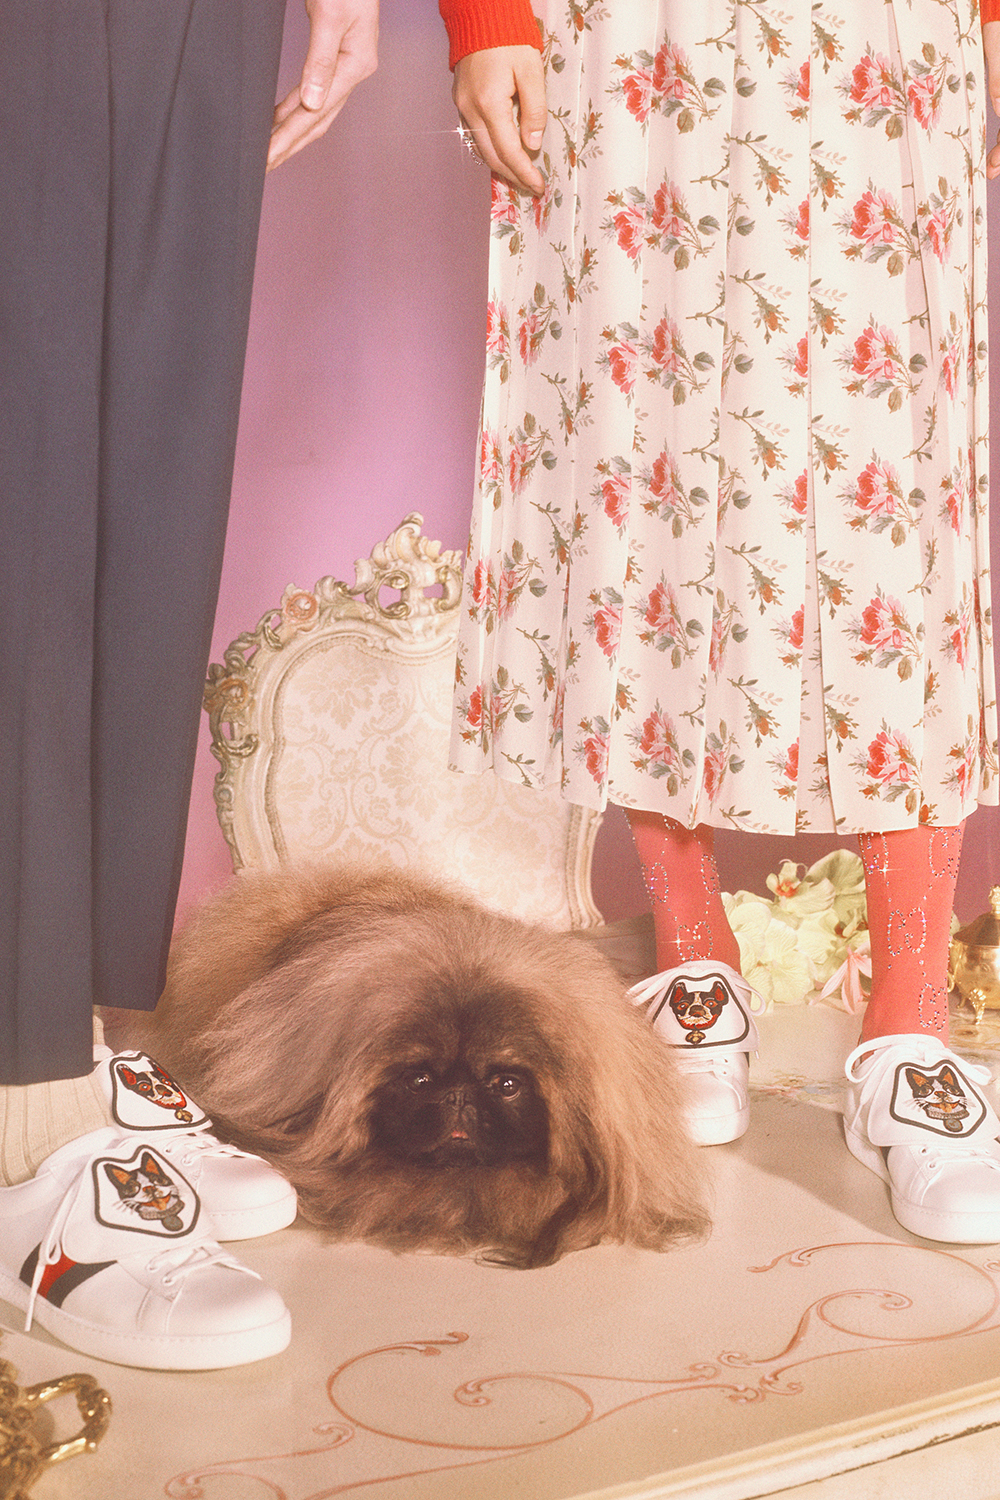 gucci-chinese-new-year-fashion-campaign-petra-collins-13.jpg